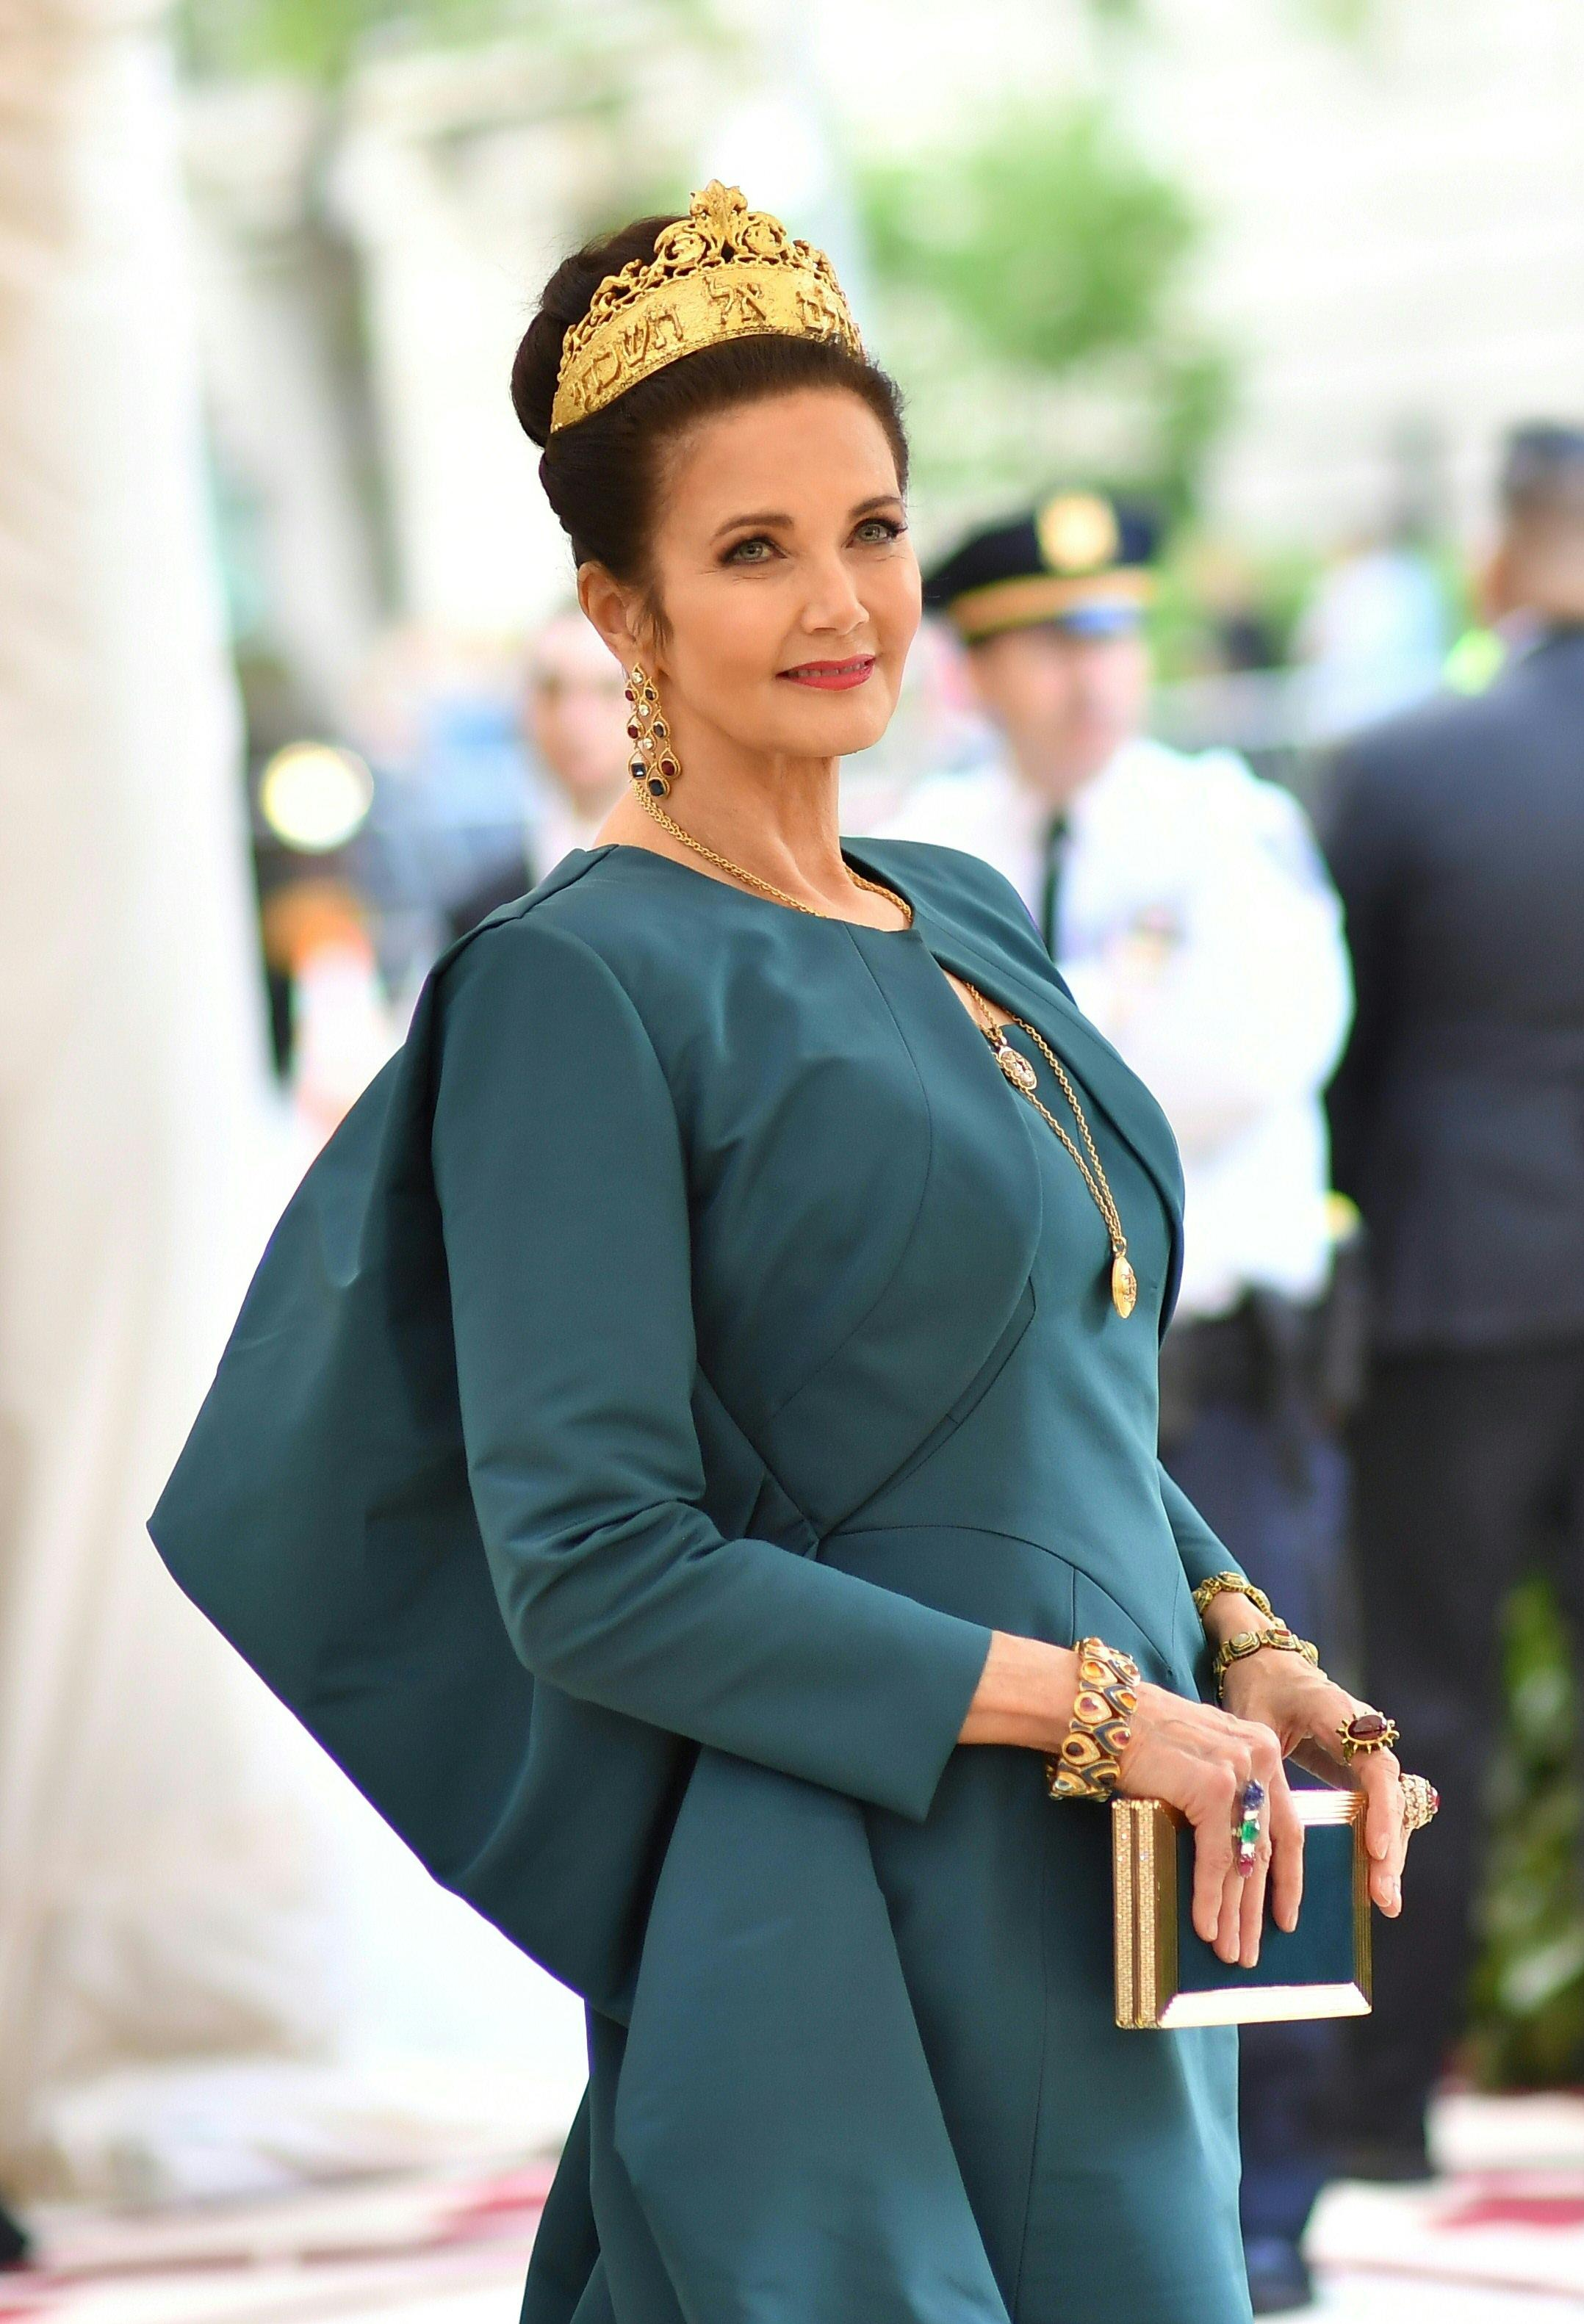 Lynda Carter arrives for the 2018 Met Gala on May 7, 2018, at the Metropolitan Museum of Art in New York. - The Gala raises money for the Metropolitan Museum of Arts Costume Institute. The Gala's 2018 theme is Heavenly Bodies: Fashion and the Catholic Imagination. (Photo by Angela WEISS / AFP)        (Photo credit should read ANGELA WEISS/AFP/Getty Images)